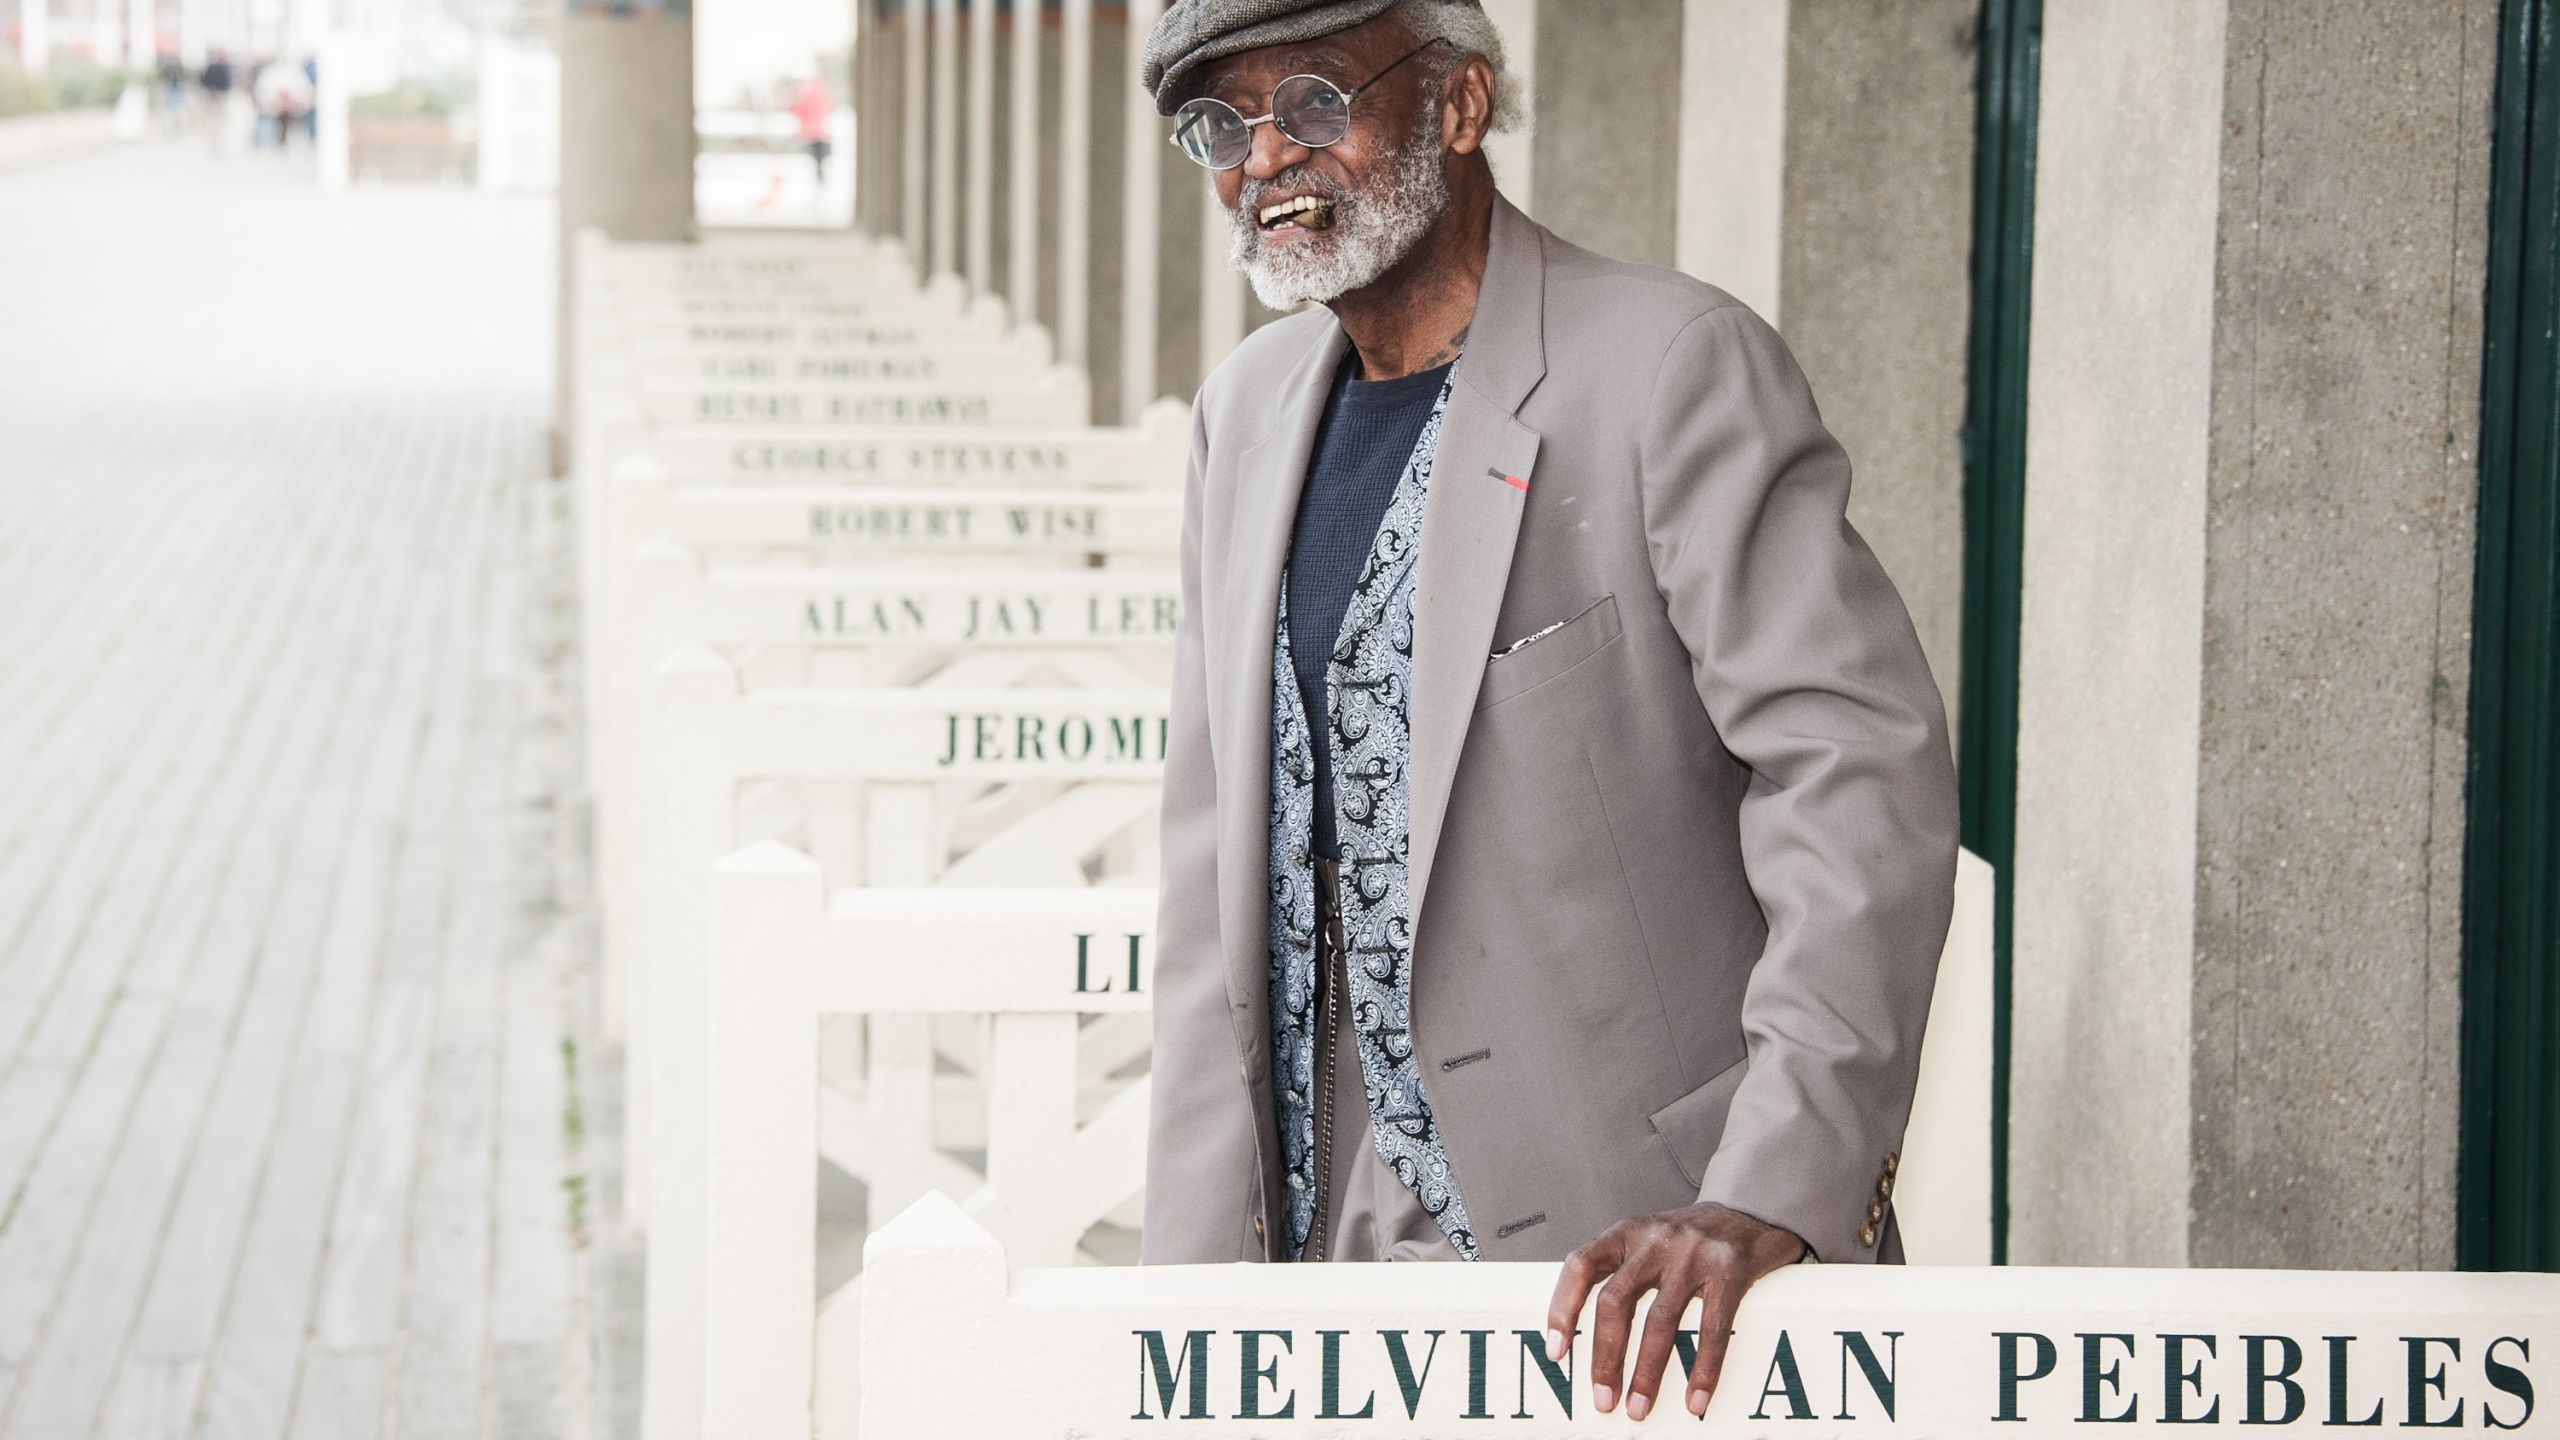 Melvin van Peebles poses next to the beach closet dedicated to him on the Promenade des Planches during the 38th Deauville American Film Festival on Sept. 5, 2012, in Deauville, France. (Francois Durand / Getty Images)